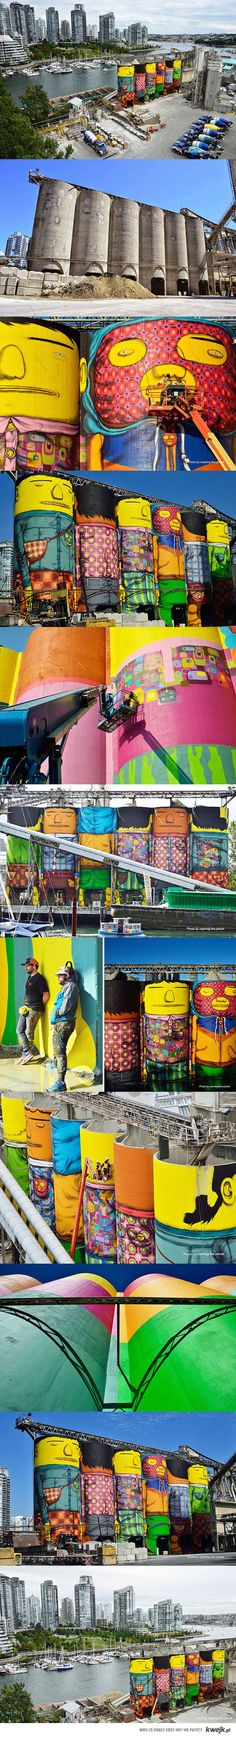 Vancouver, Granville Island, by brothers Os Gemos